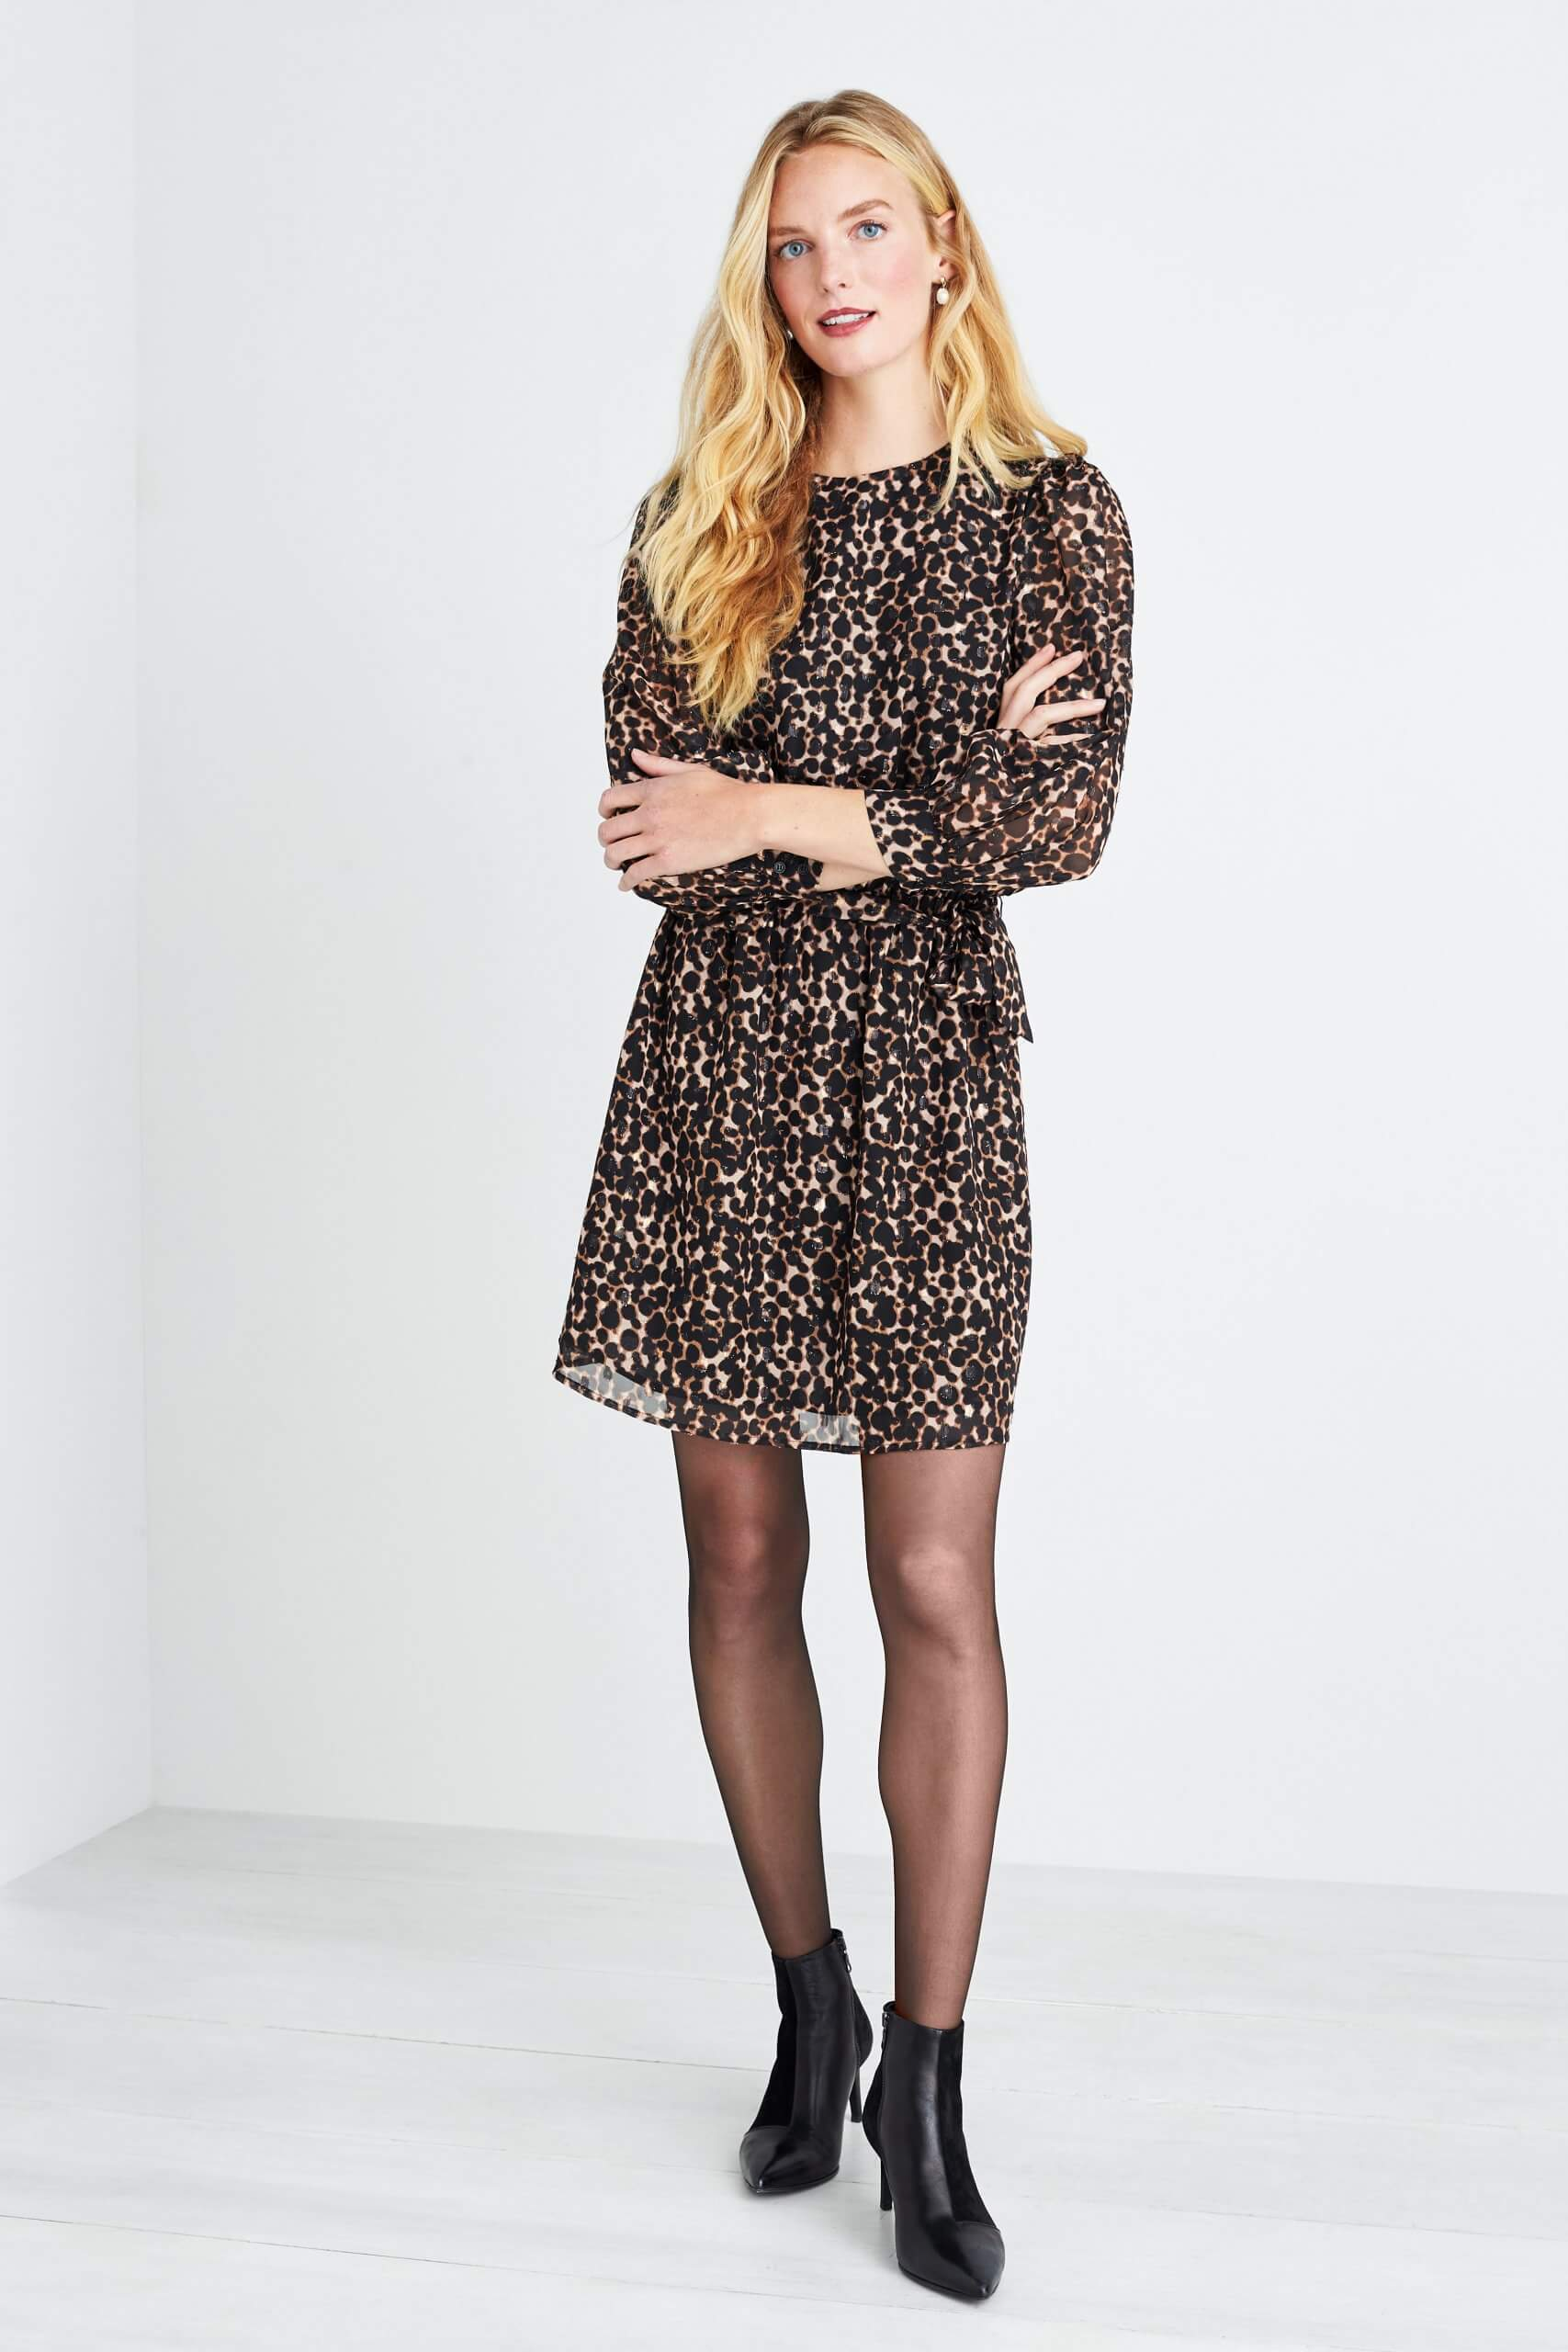 Stitch Fix Women's model wearing a black leopard print dress that hits just above the knees with black tights and black ankle booties.